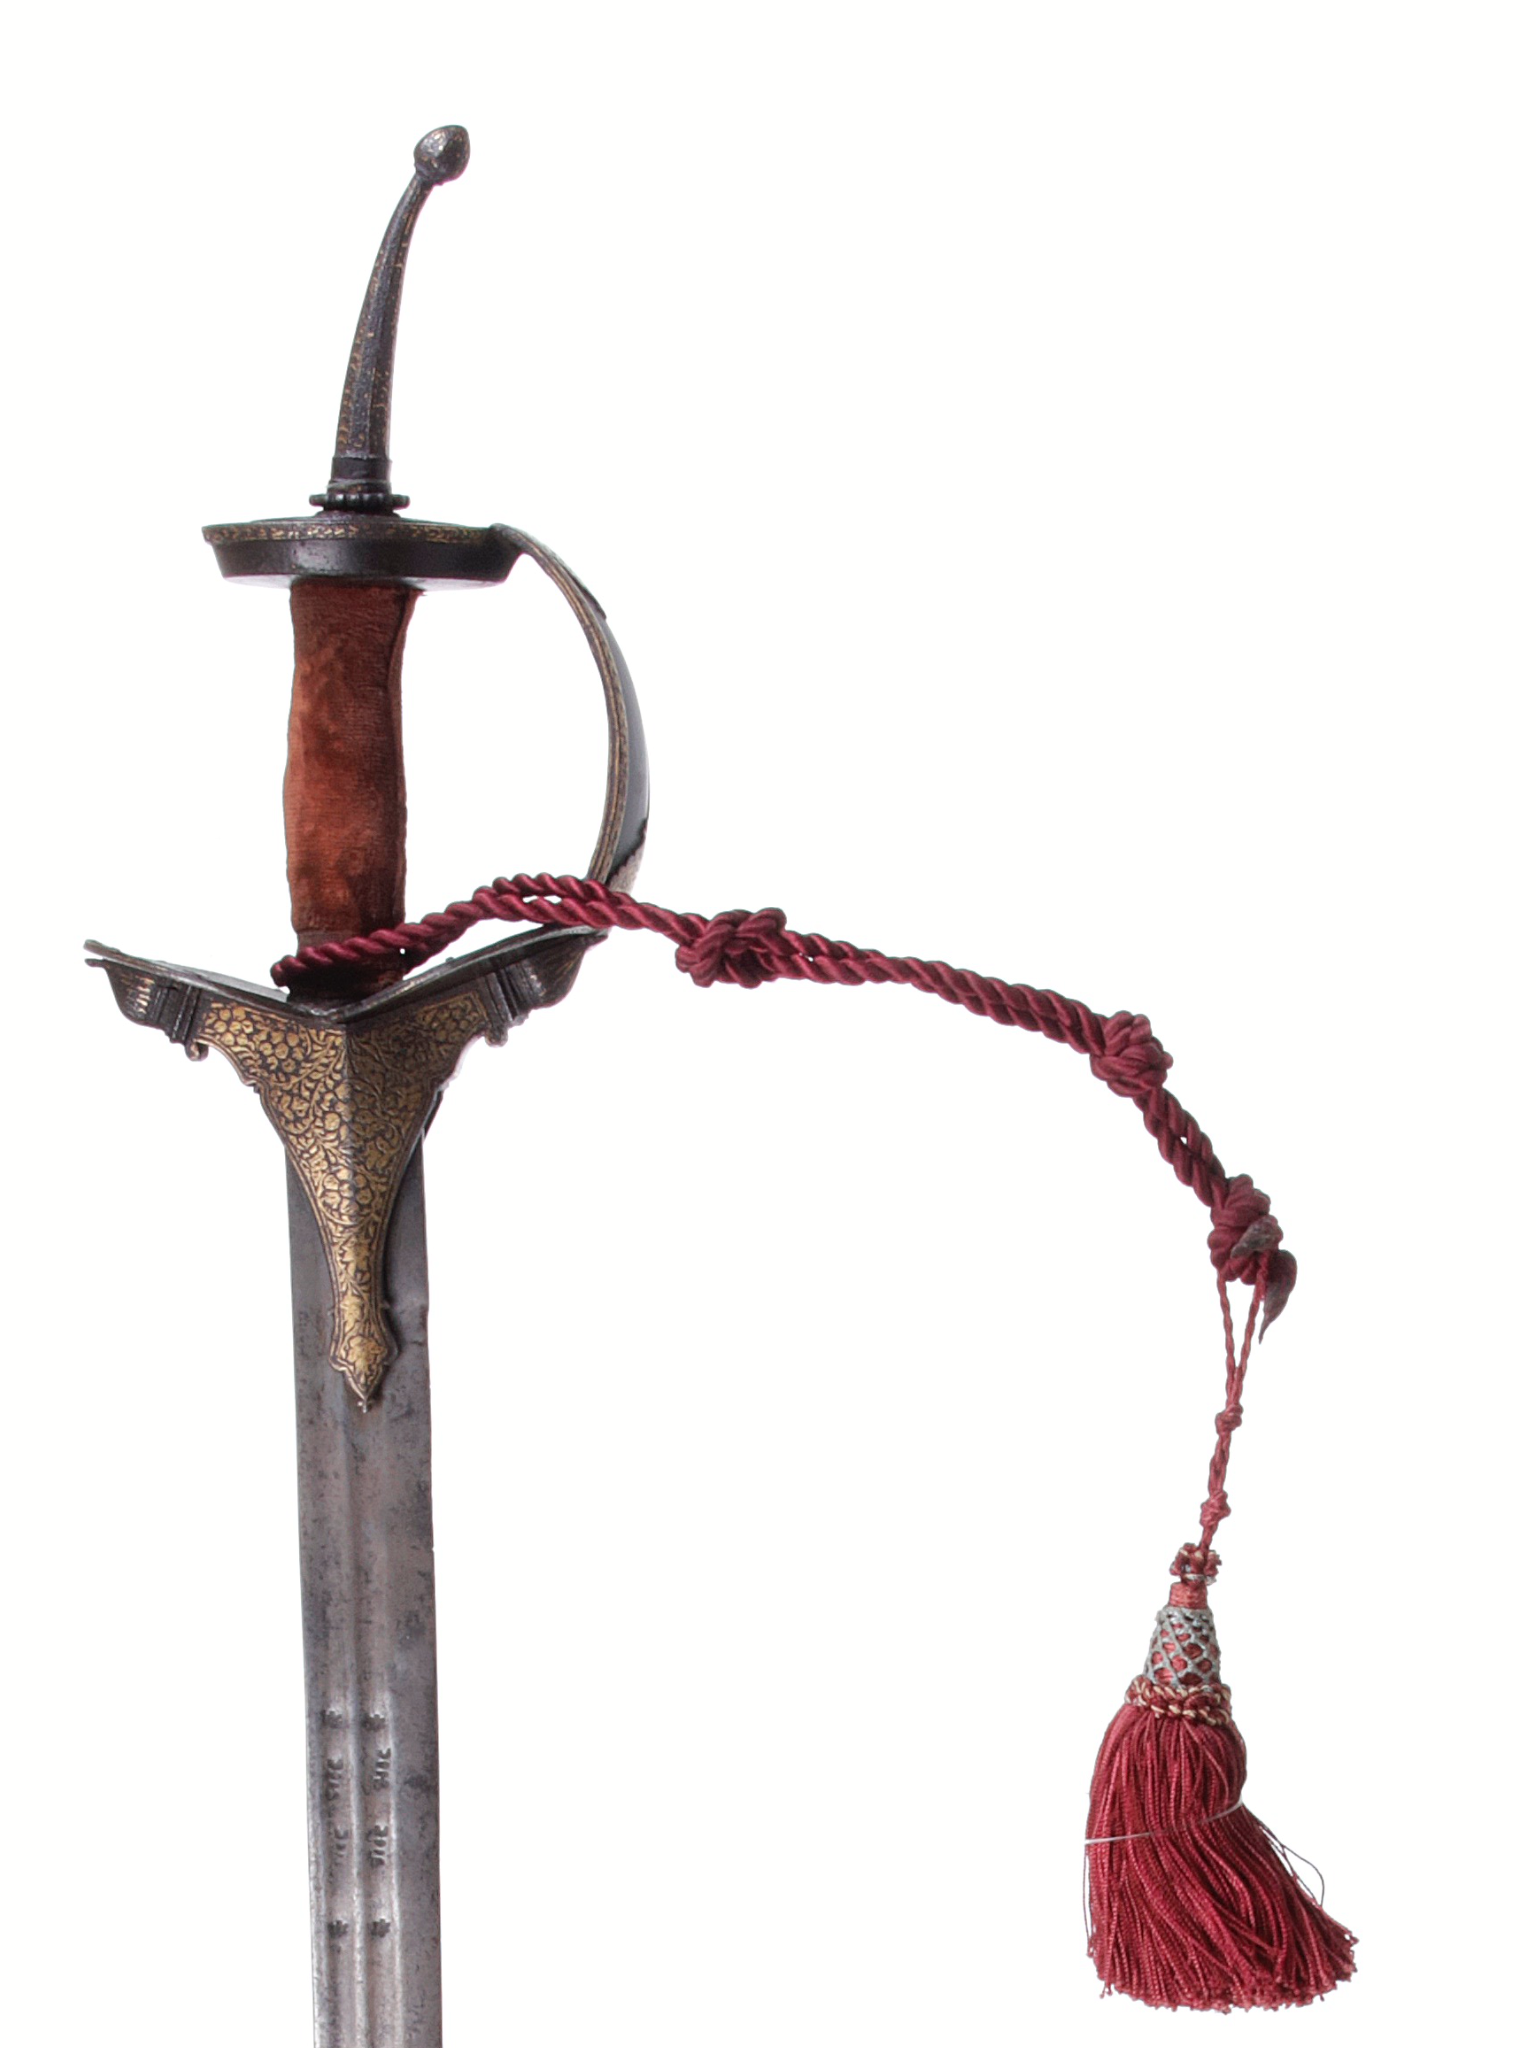 From The Caravana Collection ! The Firangi, Indian sword (foreigner), related with the Portuguese sailors. Always with a European blade. From the 18th century.